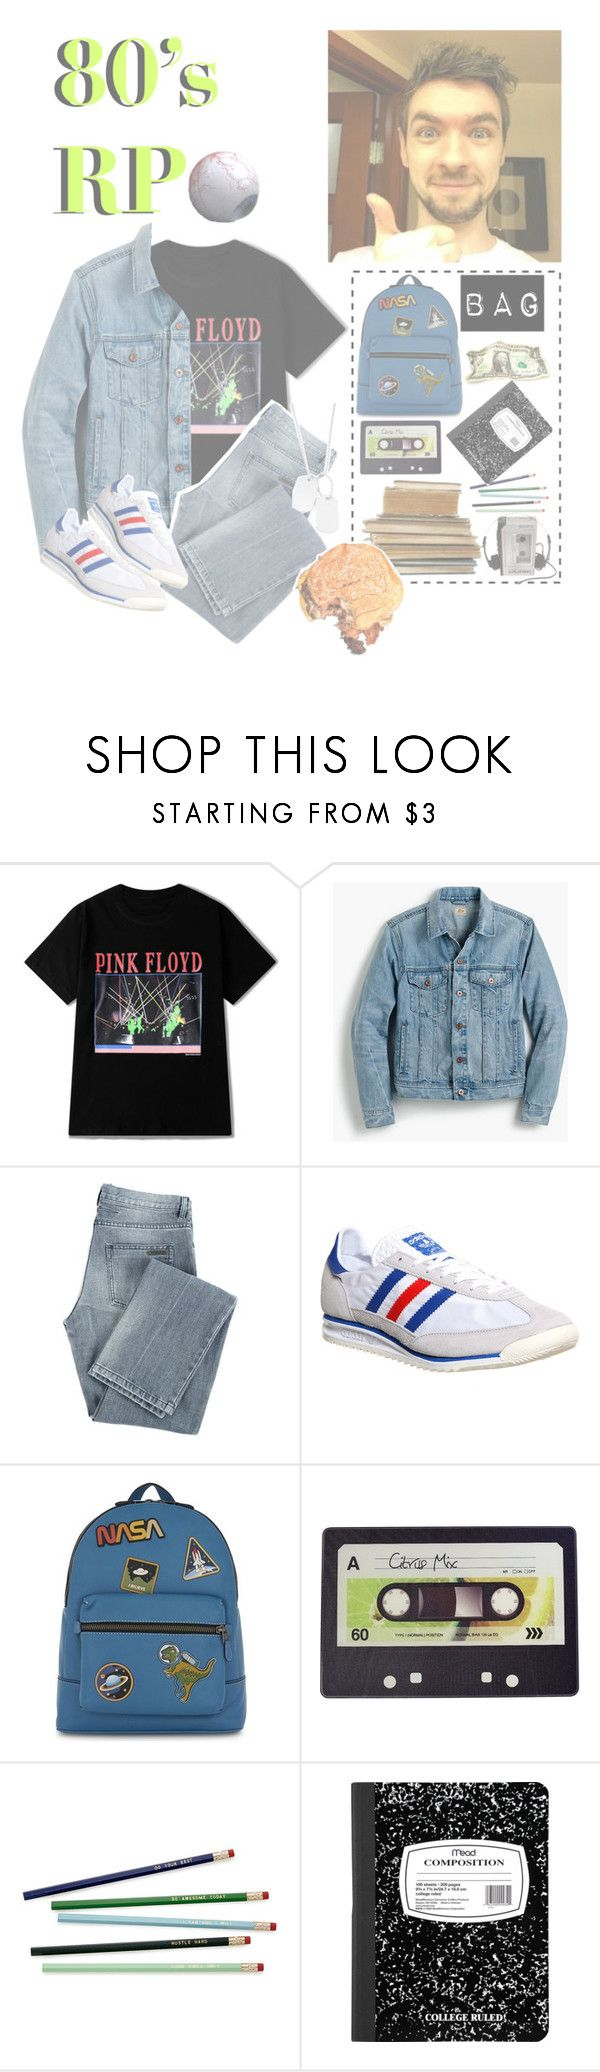 """""""80's RP🐊💚"""" by squishy-bubble-tea ❤ liked on Polyvore featuring J.Crew, Givenchy, adidas, Coach, Joseph Joseph, Sony, Variations, men's fashion and menswear"""